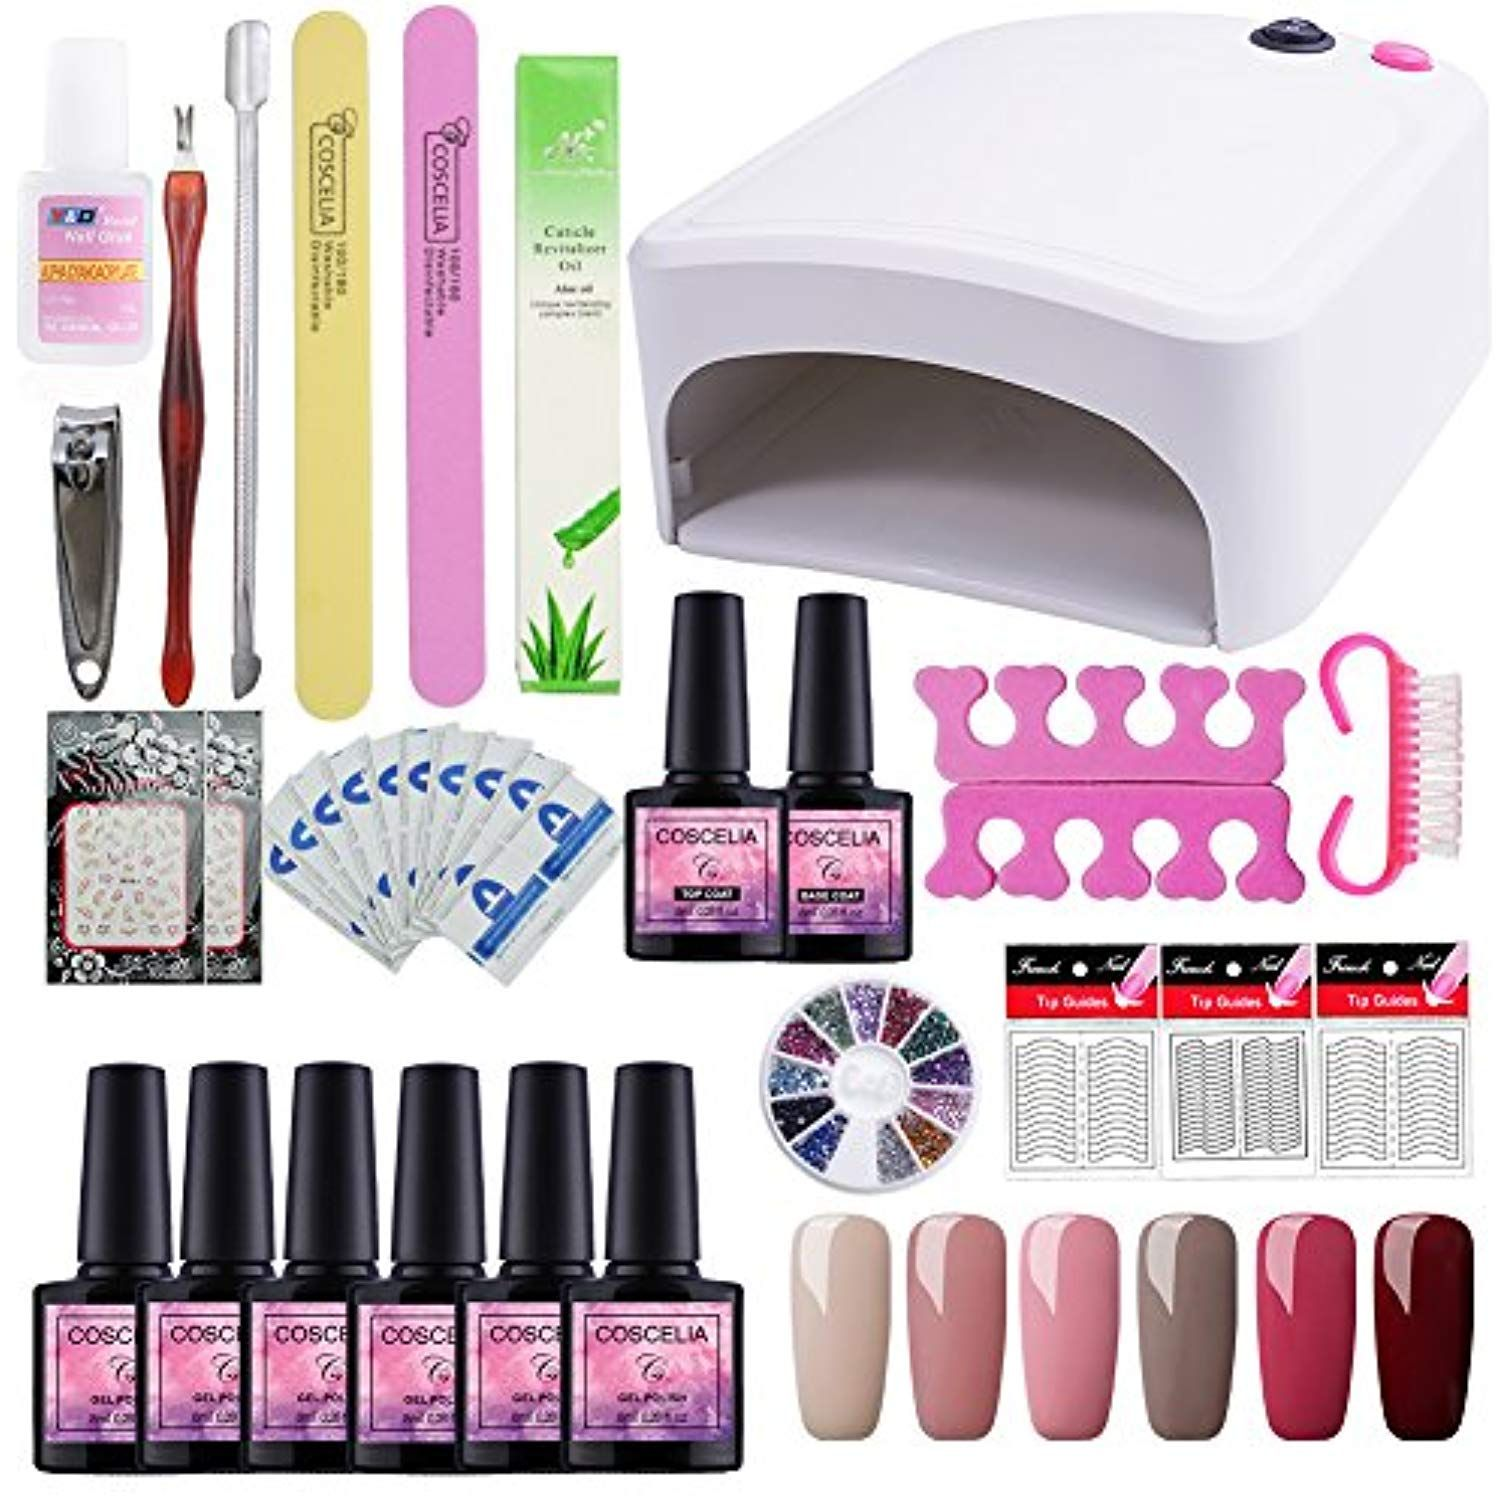 Saint Acior 6 Pcs Nail Polish Set With 36w Uv Nail Dryer Lamp Nail Starter Kit Soak Off Color Gel Polish Design B Gel Nail Set Gel Nail Kit Gel Polish Manicure